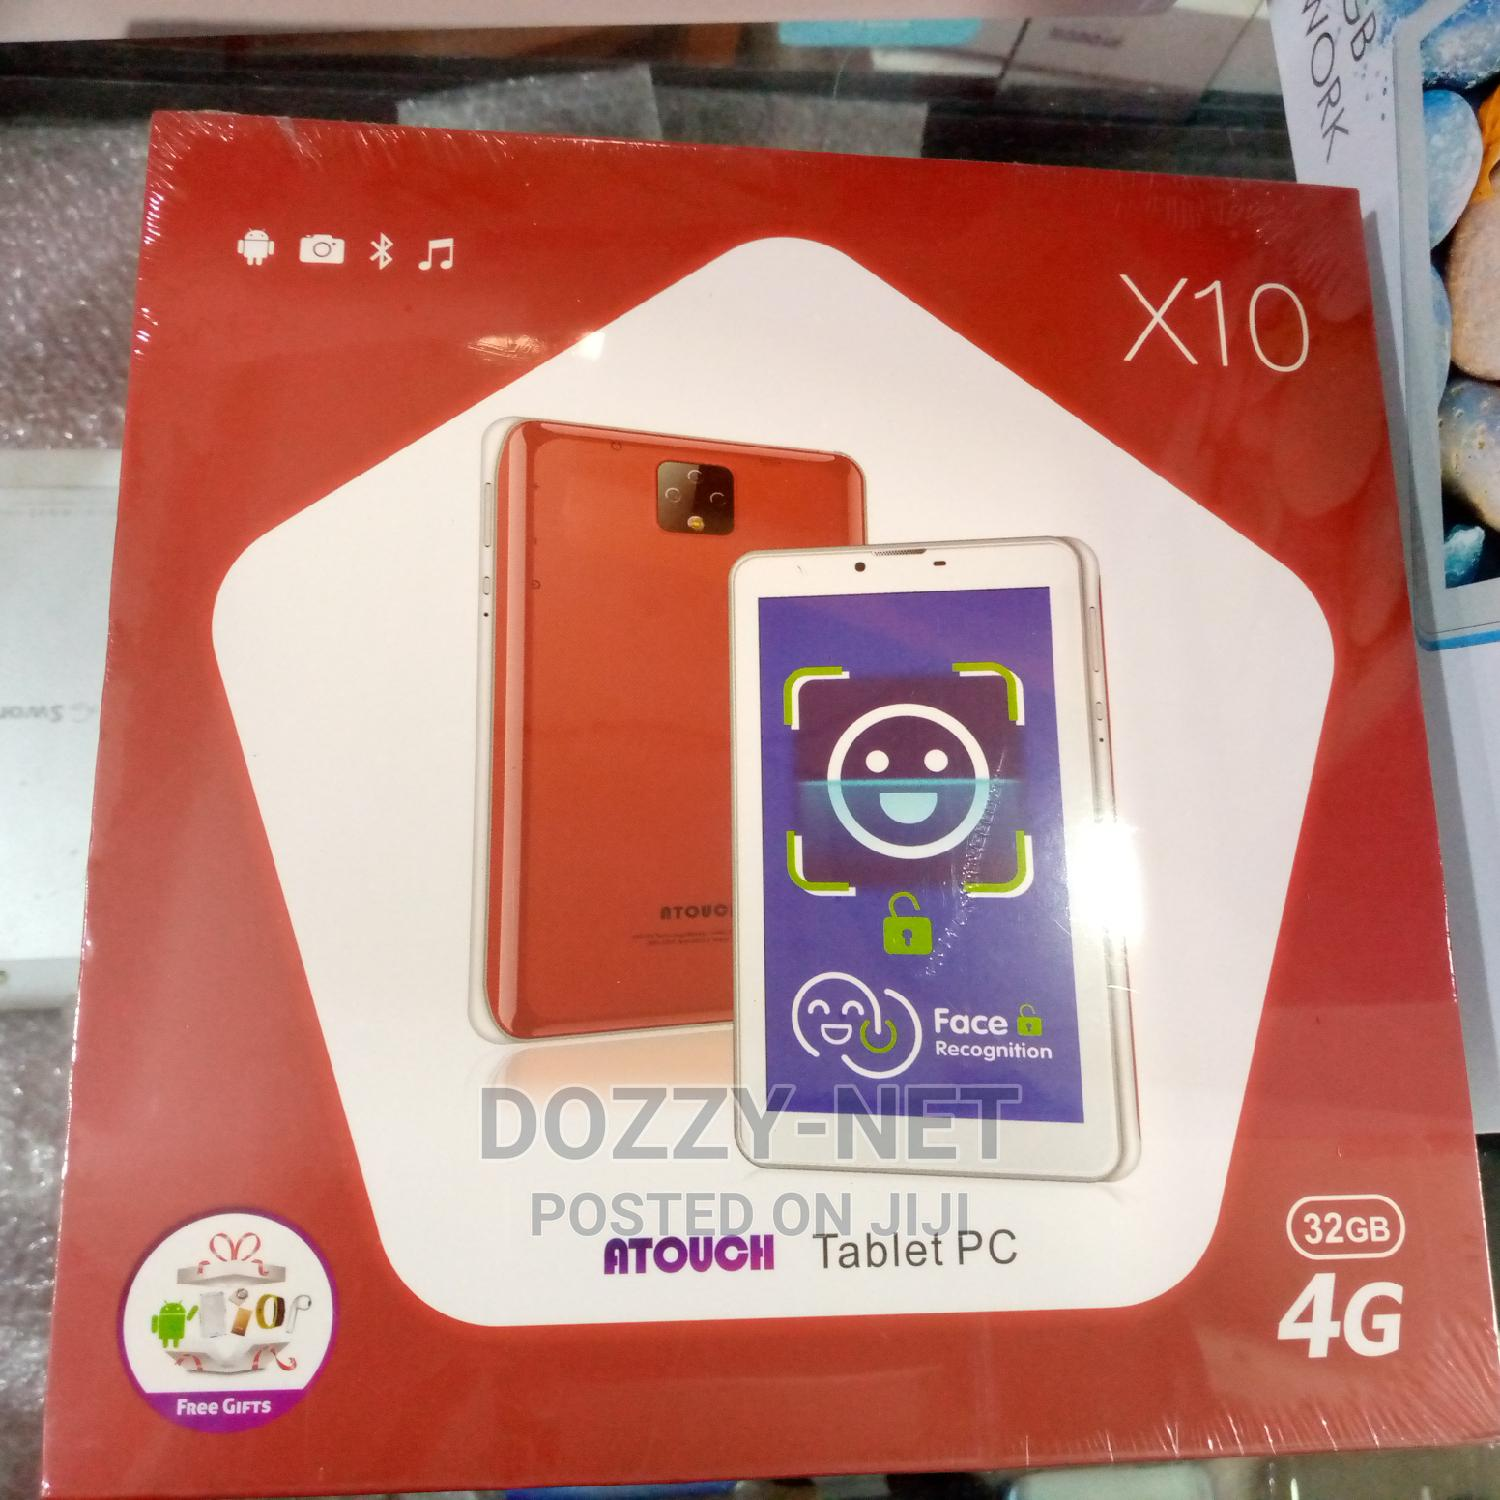 New Atouch X10 32 GB